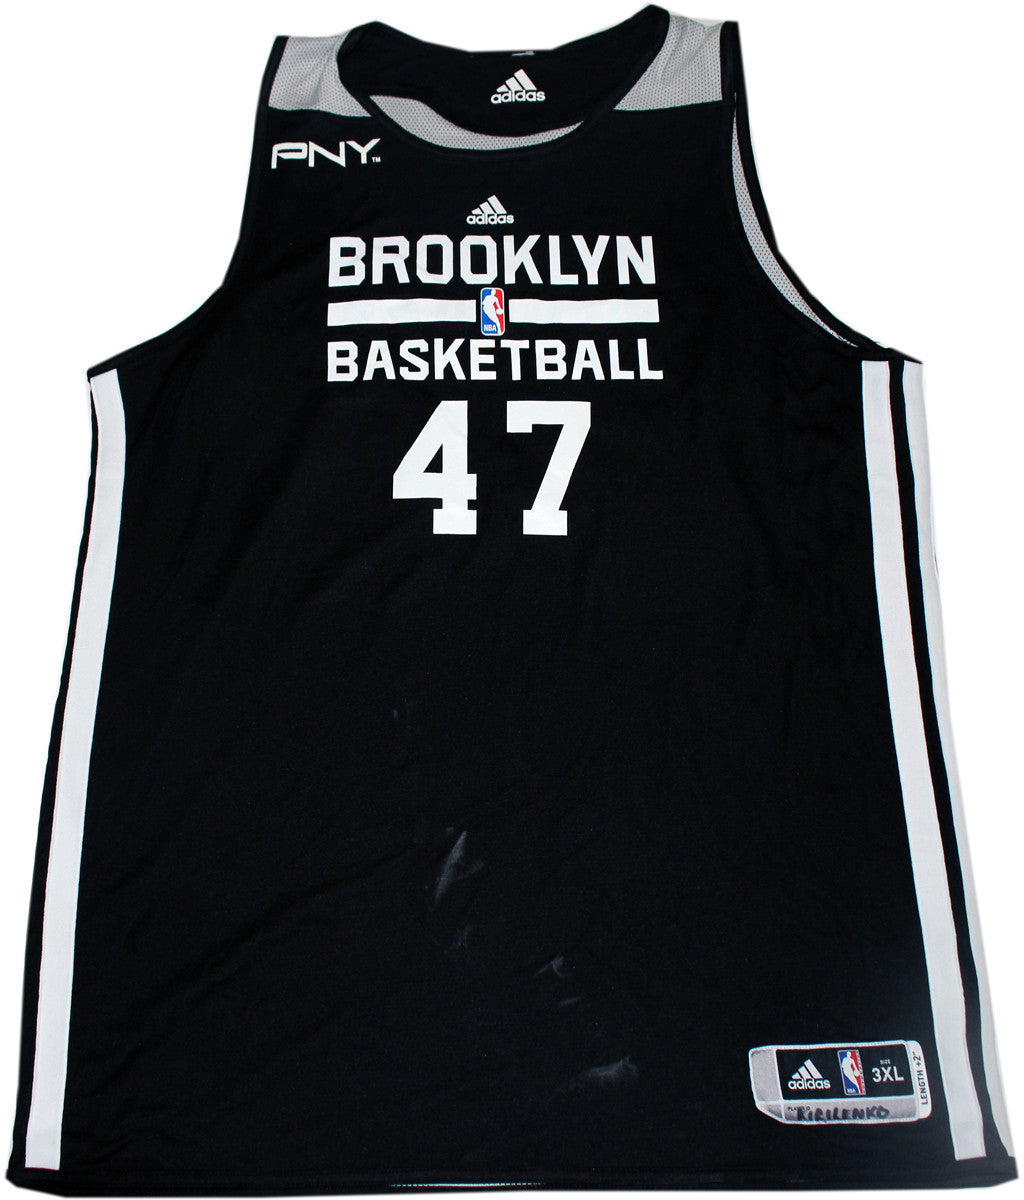 3638aed27 https://www.steinersports.com/ daily https://www.steinersports.com ...